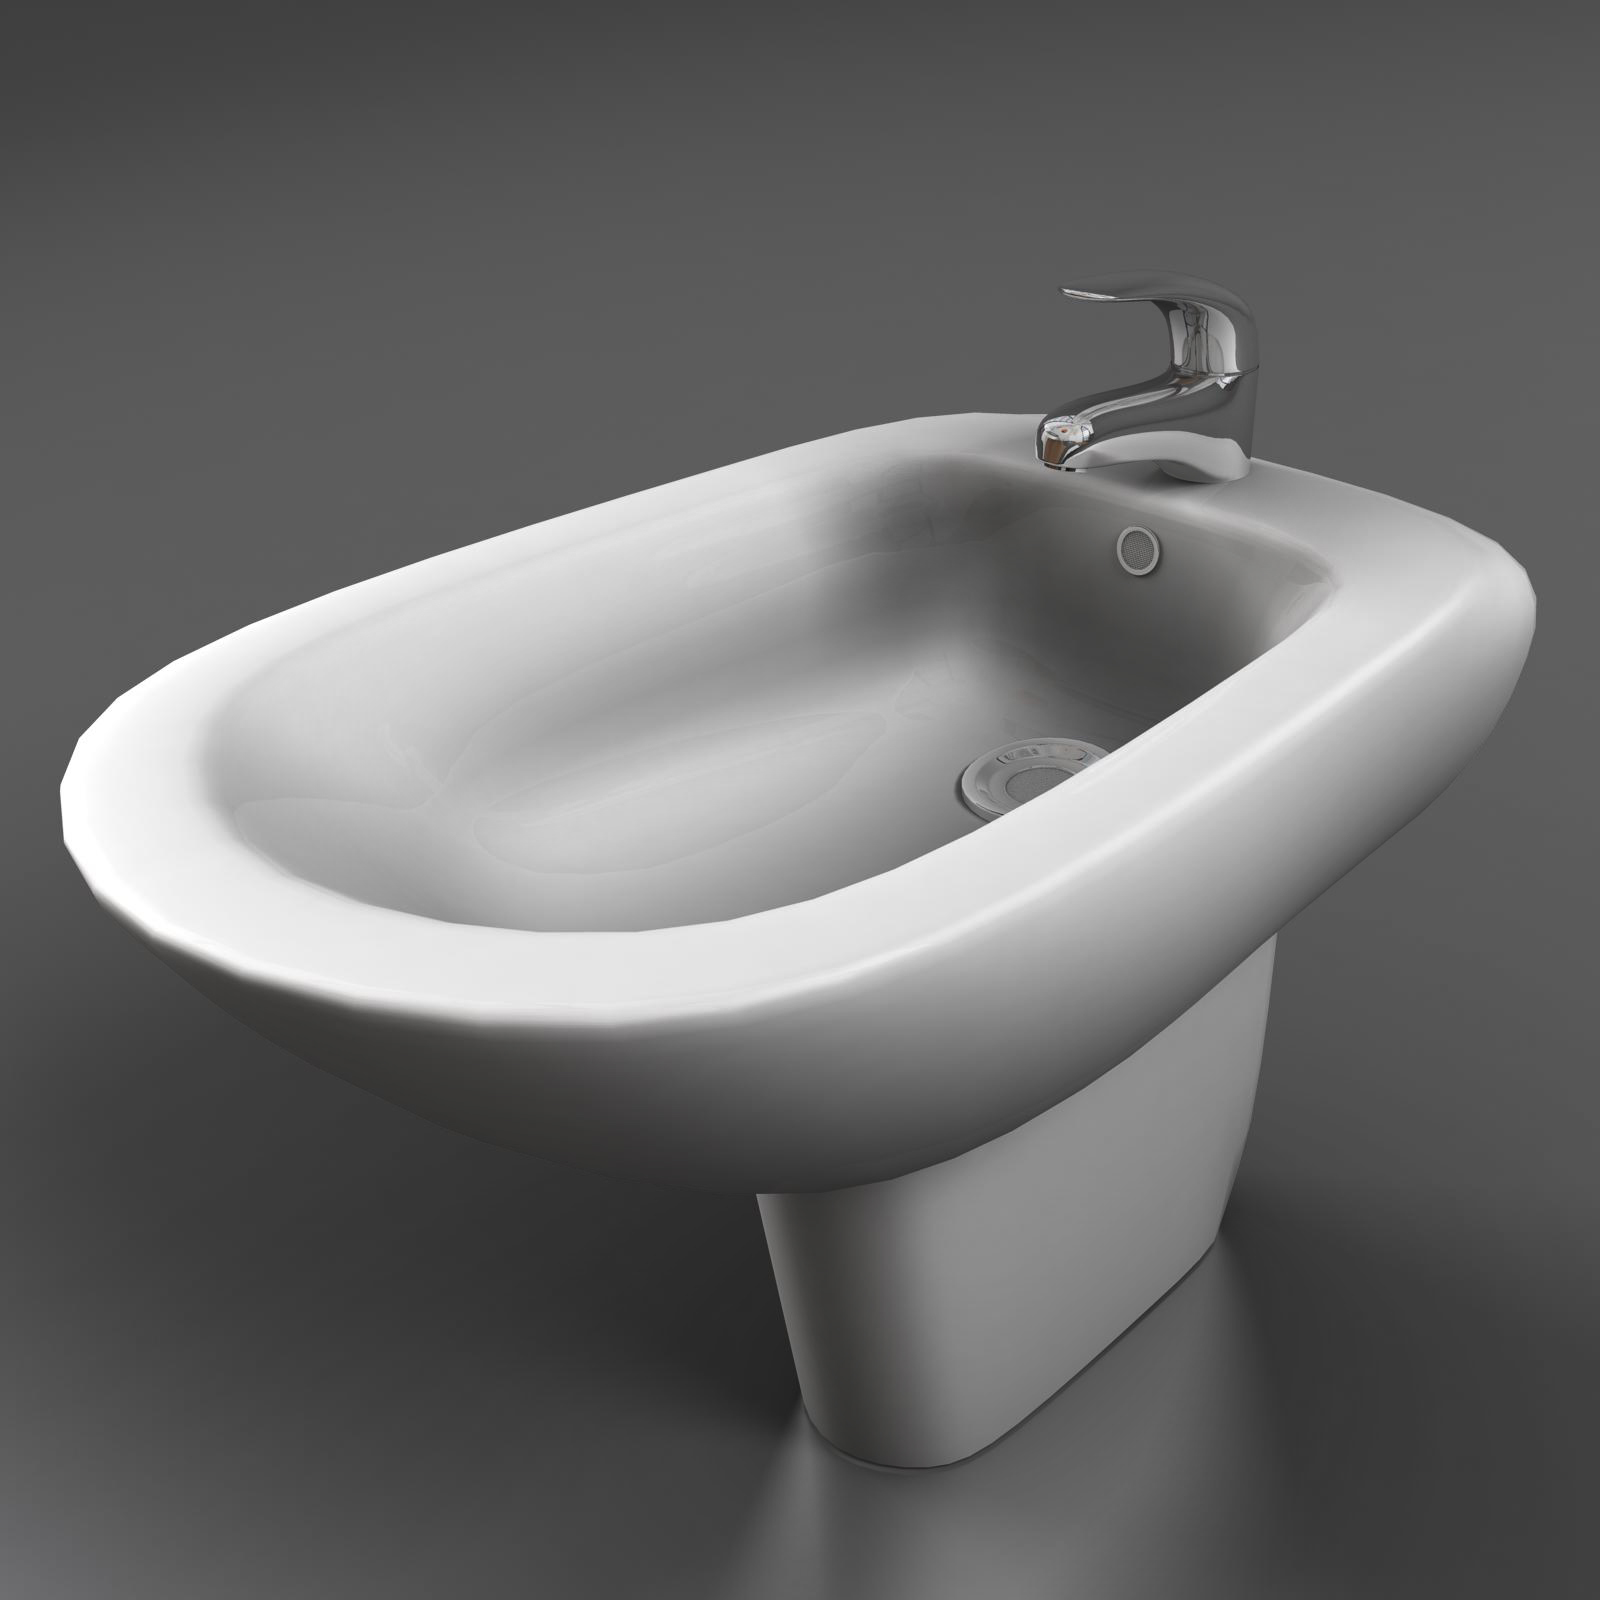 bidet bathroom 3d model 3ds max fbx ma mb obj 155964